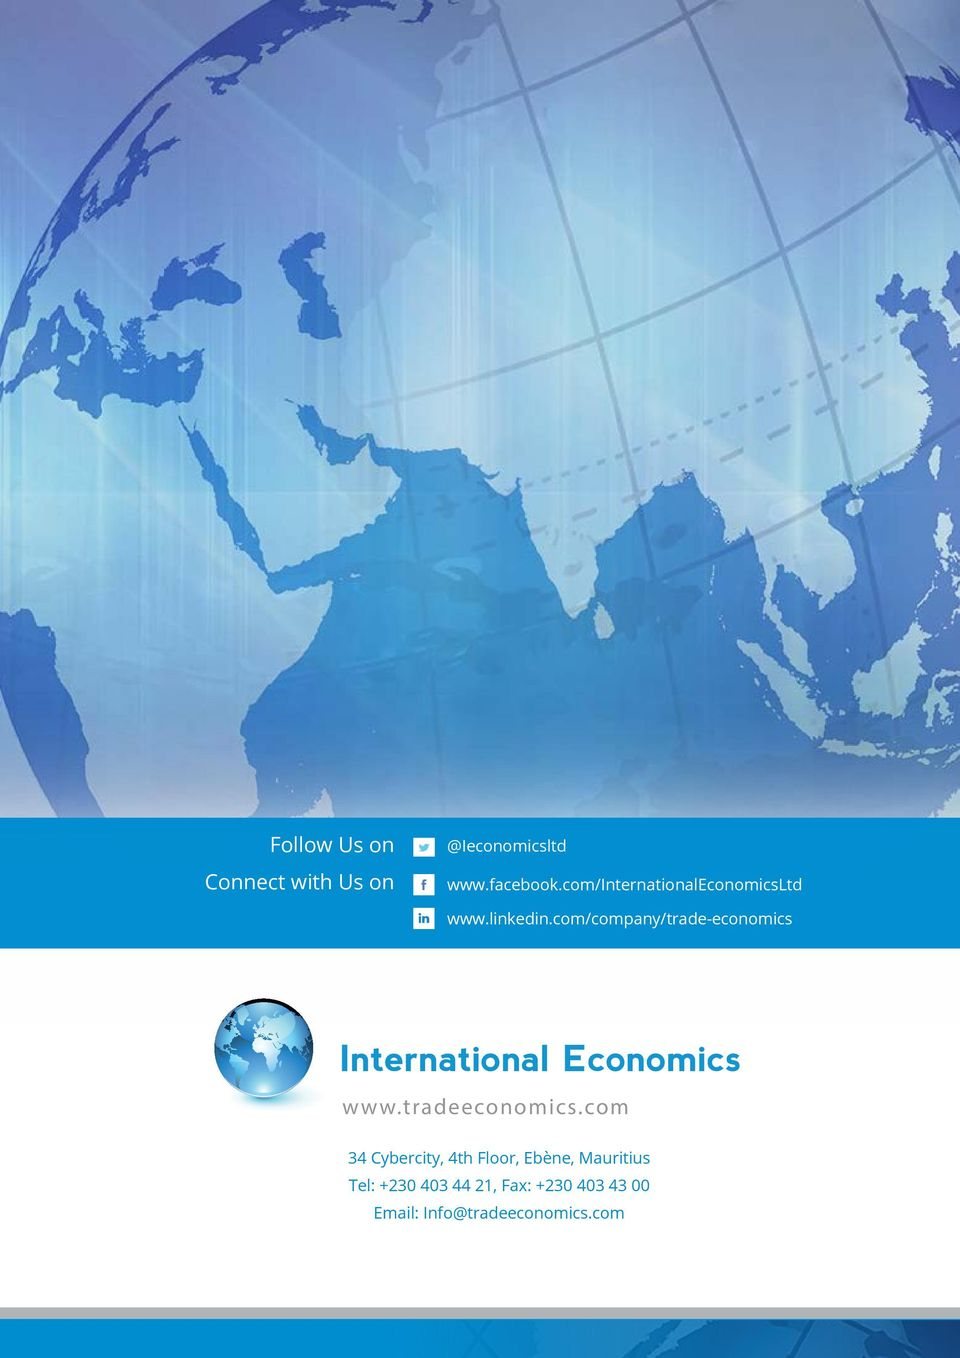 com/company/trade-economics International Economics www.tradeeconomics.